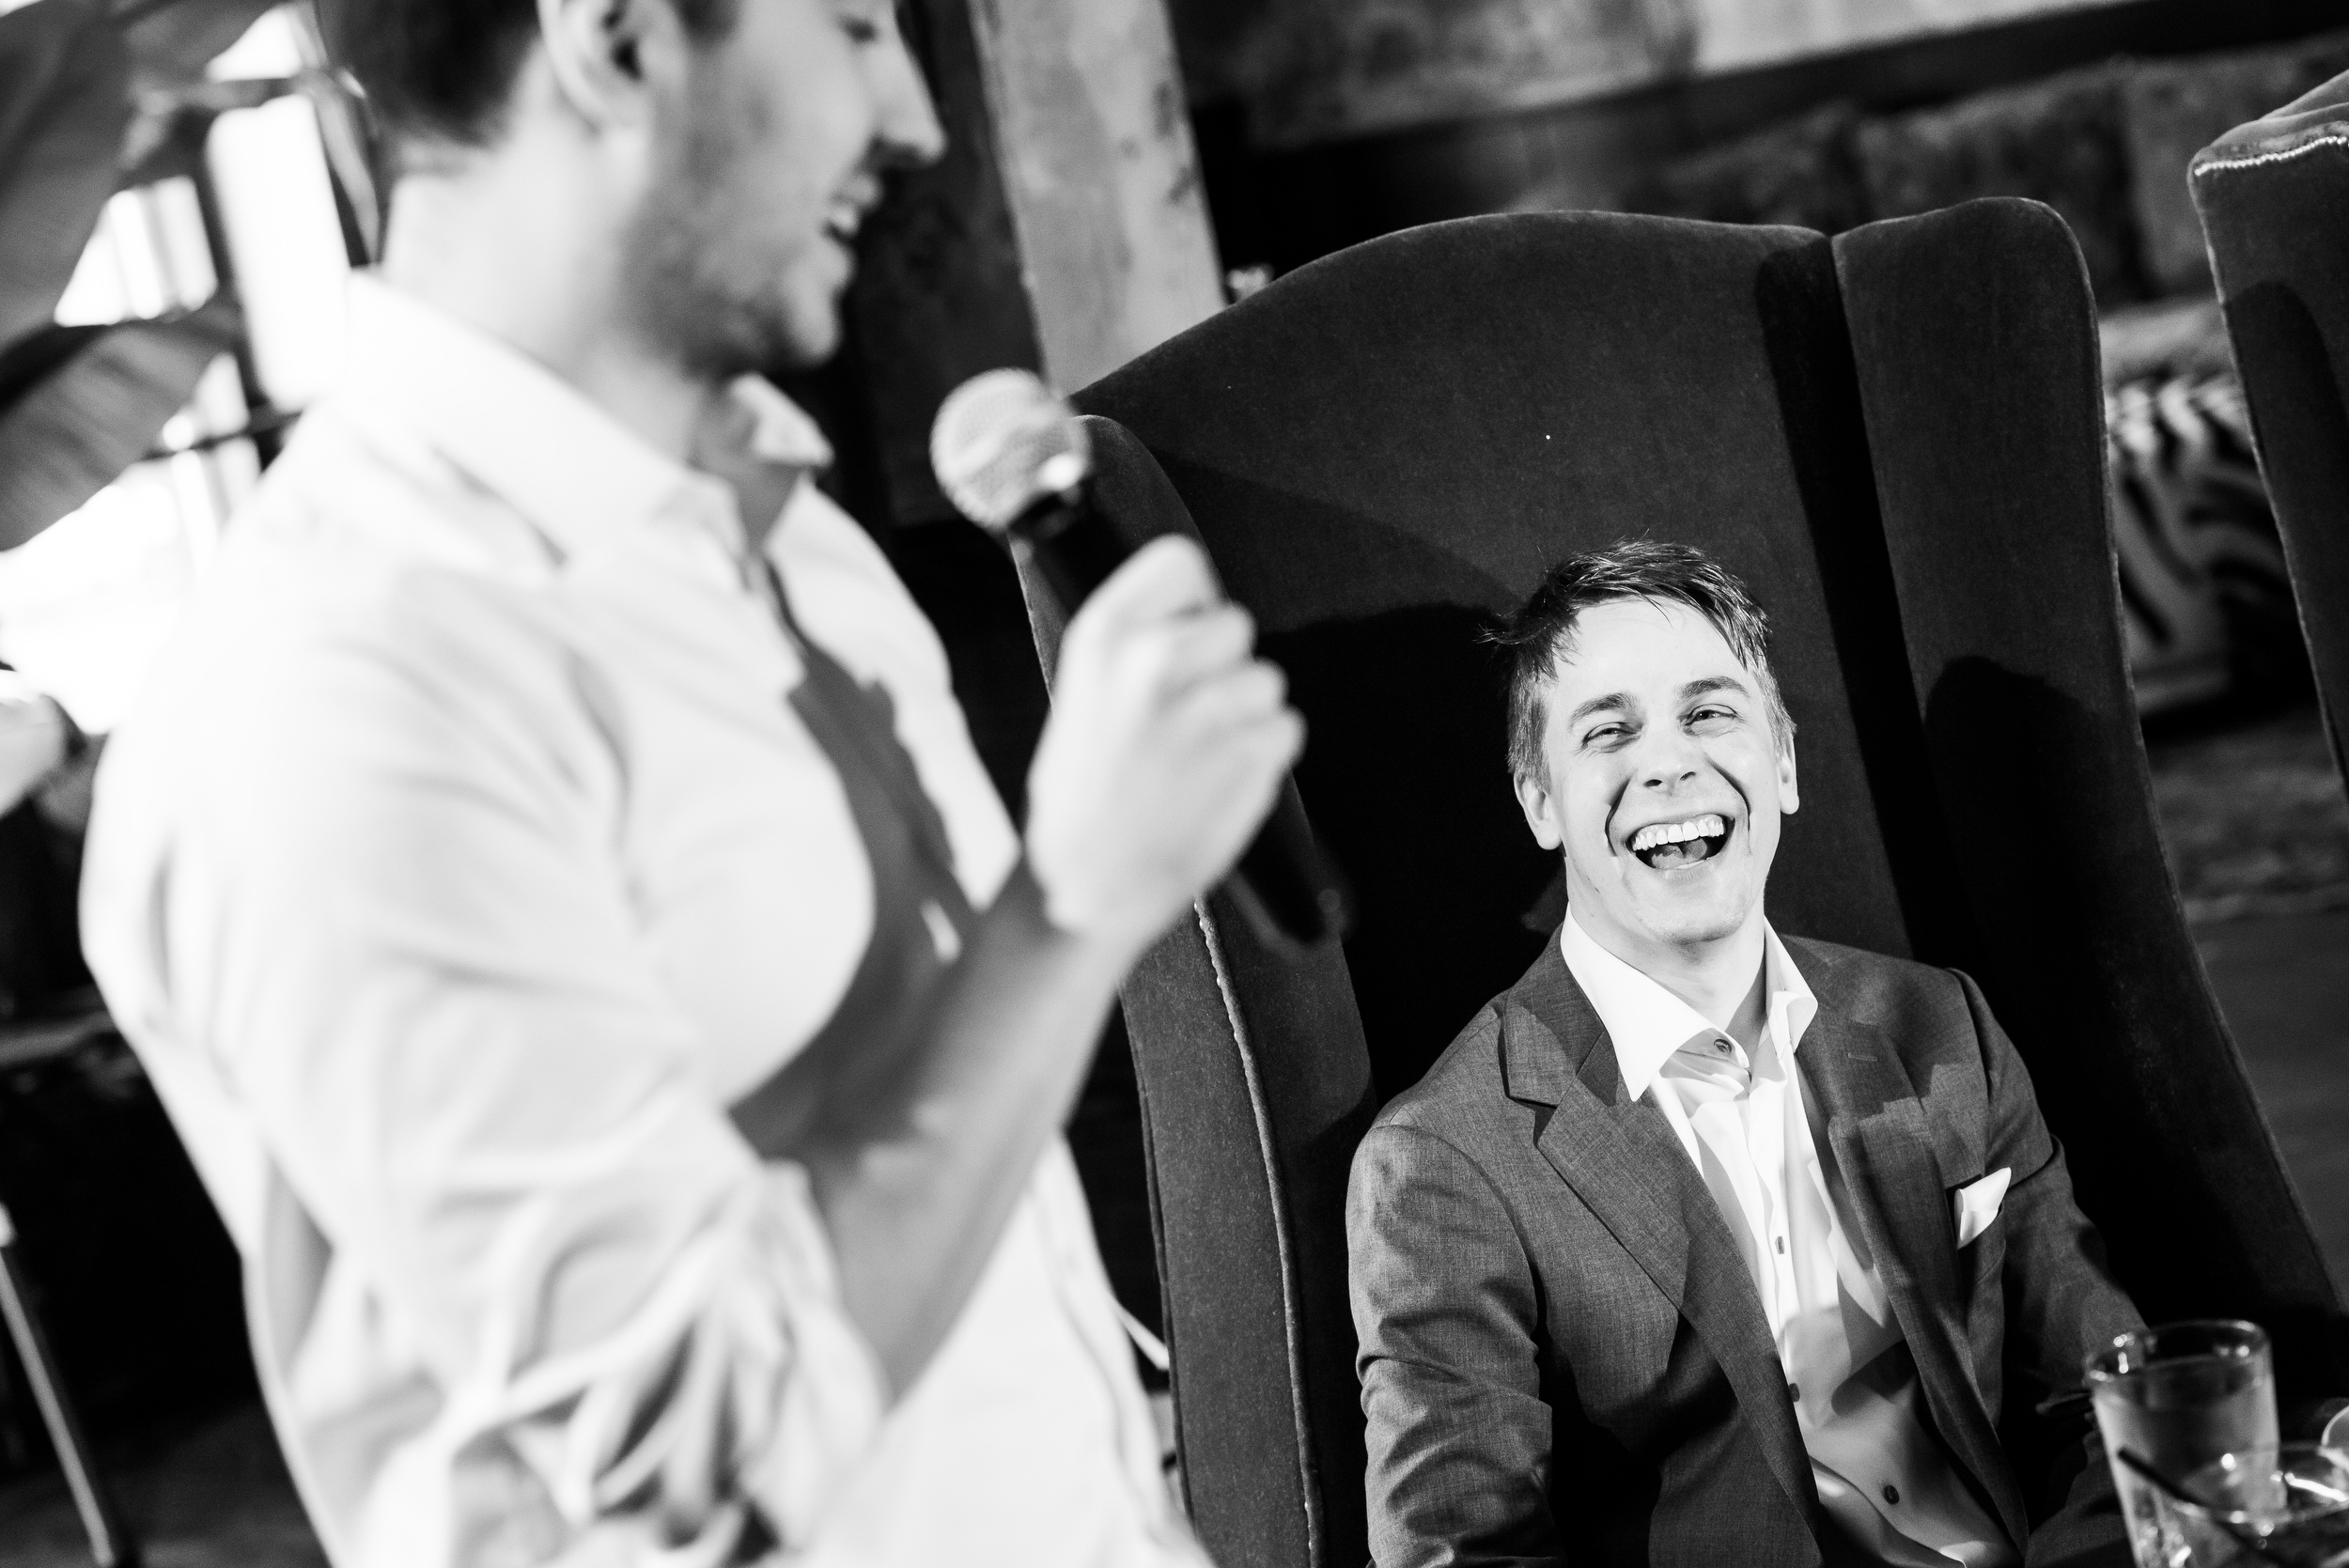 Best man giving his wedding speech at Carnivale Chicago wedding captured by J Brown Photography